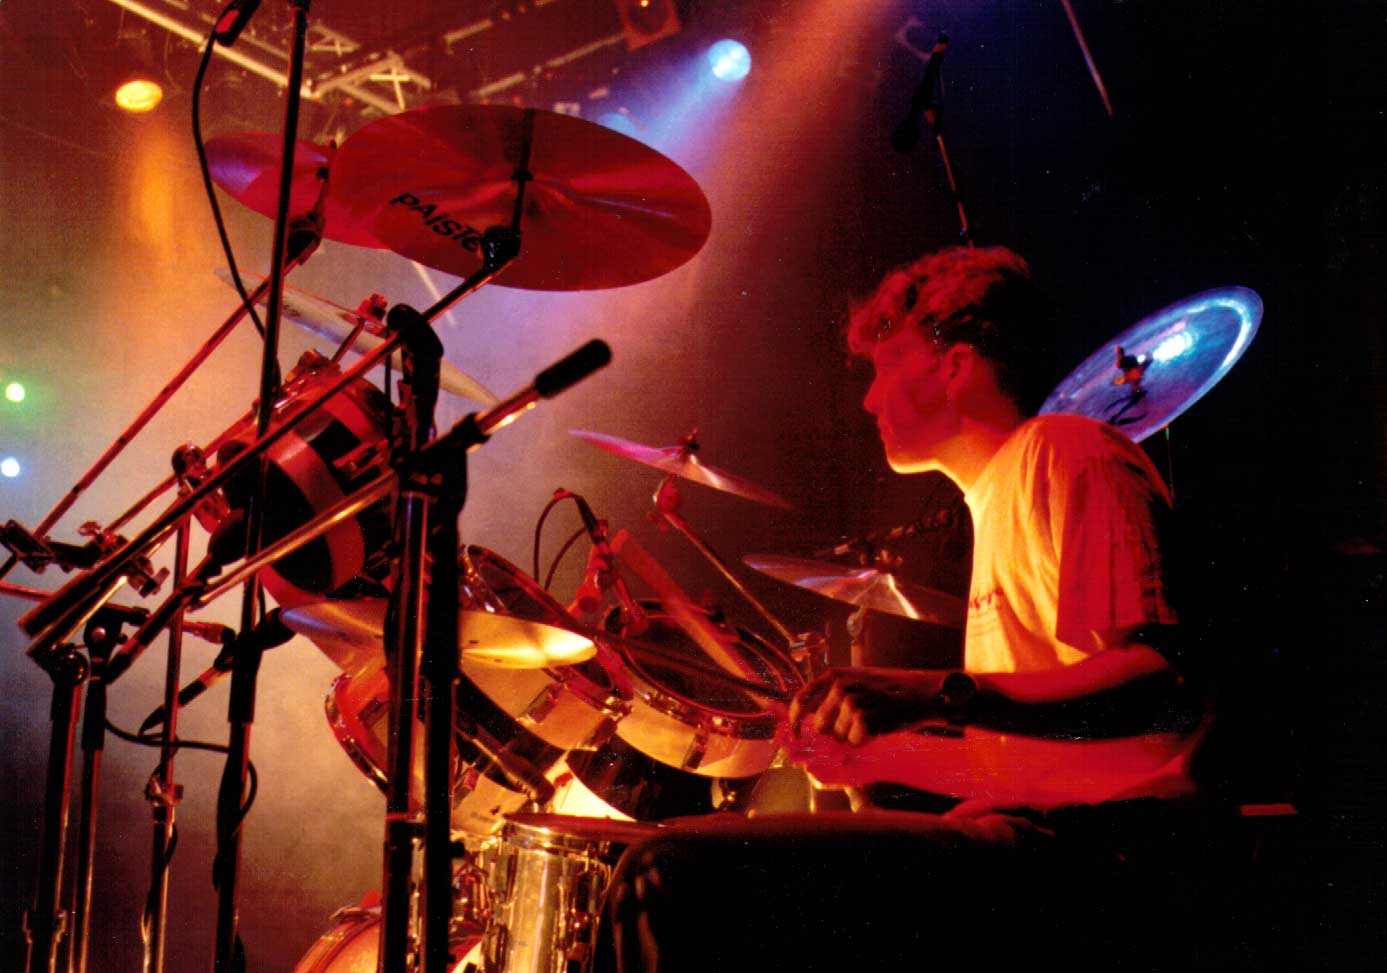 Matt Shearer on Drums, RocSoc 1990, with The Paracetamols